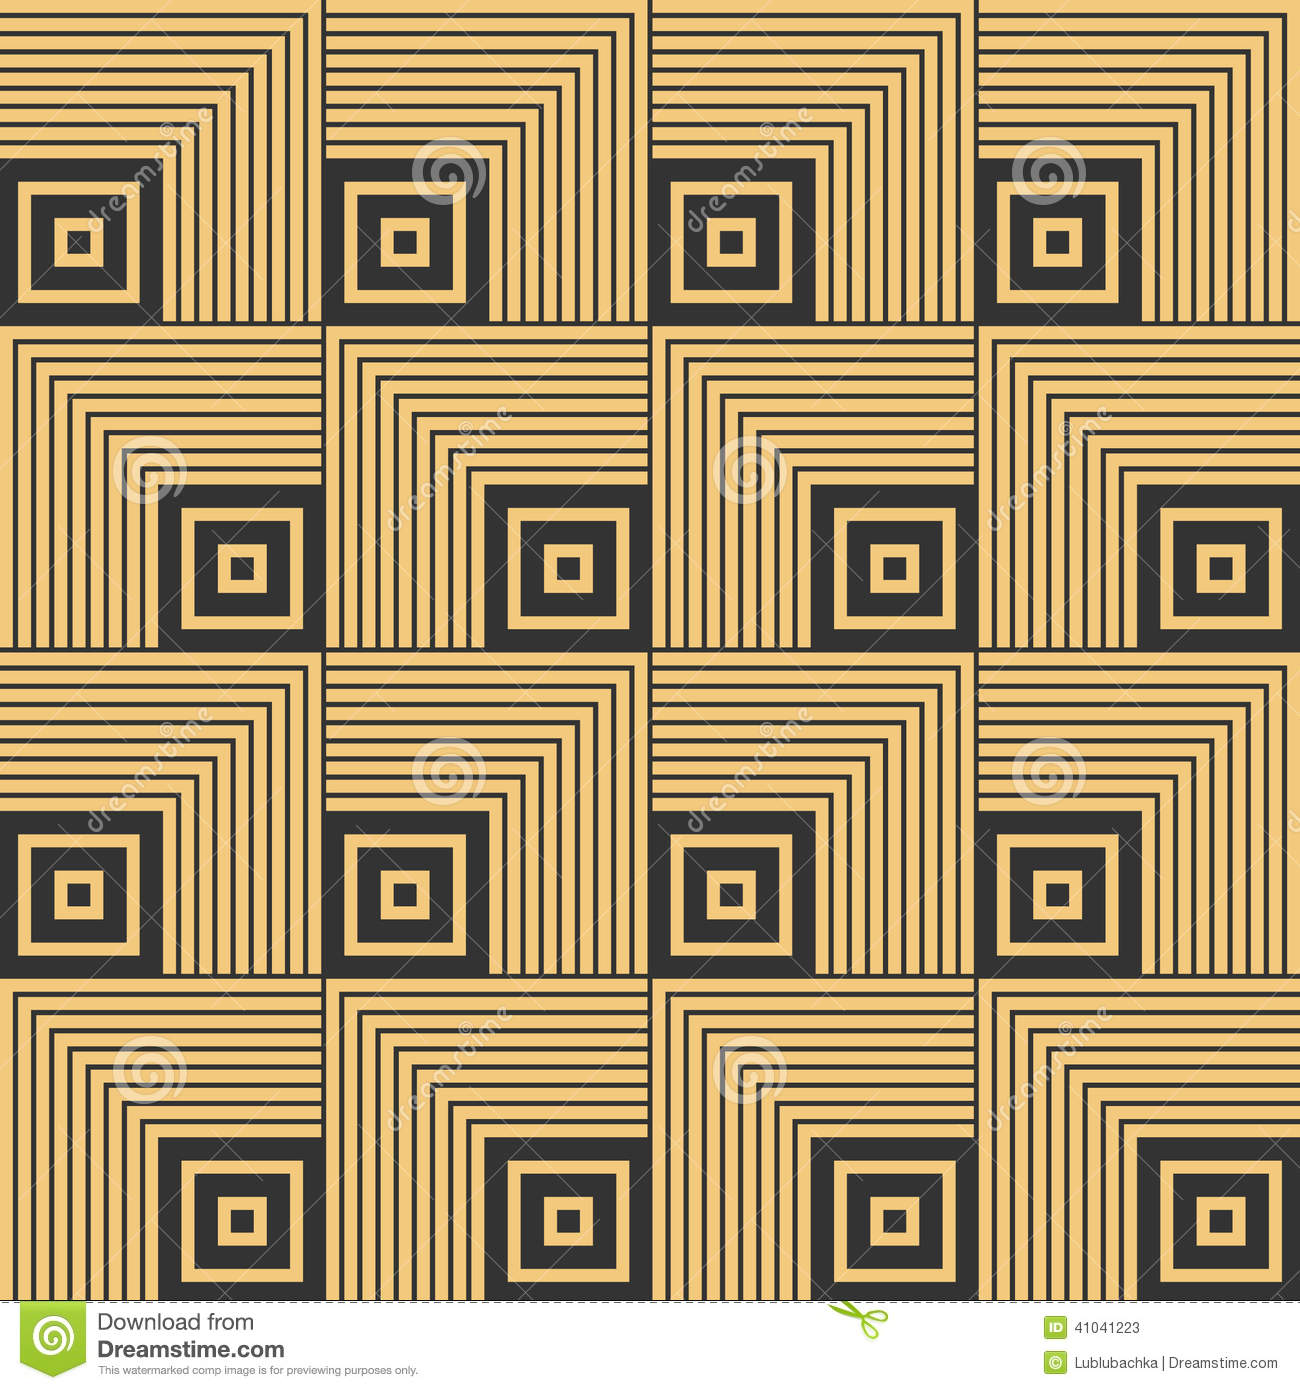 Conventionalized Peacock Feather Designs additionally Art Deco Wallpaper further Squares Pattern By Federico 189745 likewise Spiral triangle entwine also Stock Illustration Art Deco Seamless Vintage Wallpaper Pattern Vector Image41041223. on art deco patterns